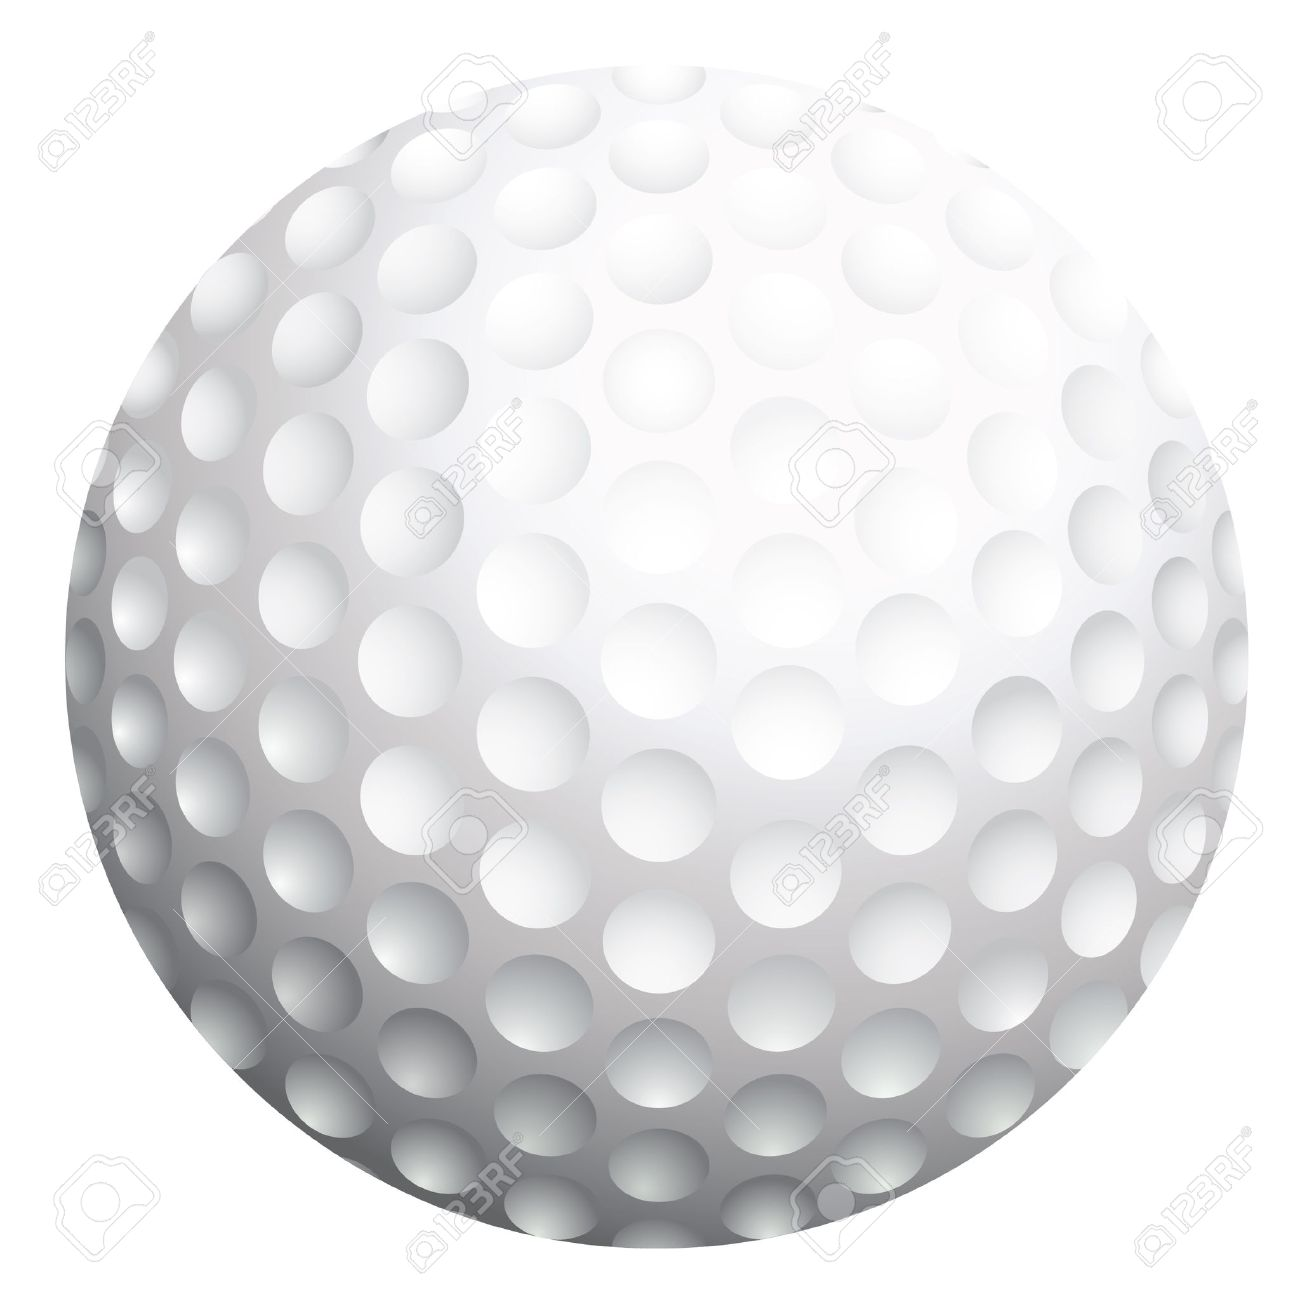 golf ball illustration royalty free cliparts vectors and stock rh 123rf com Golf Ball Graphic Golf Ball Drawing